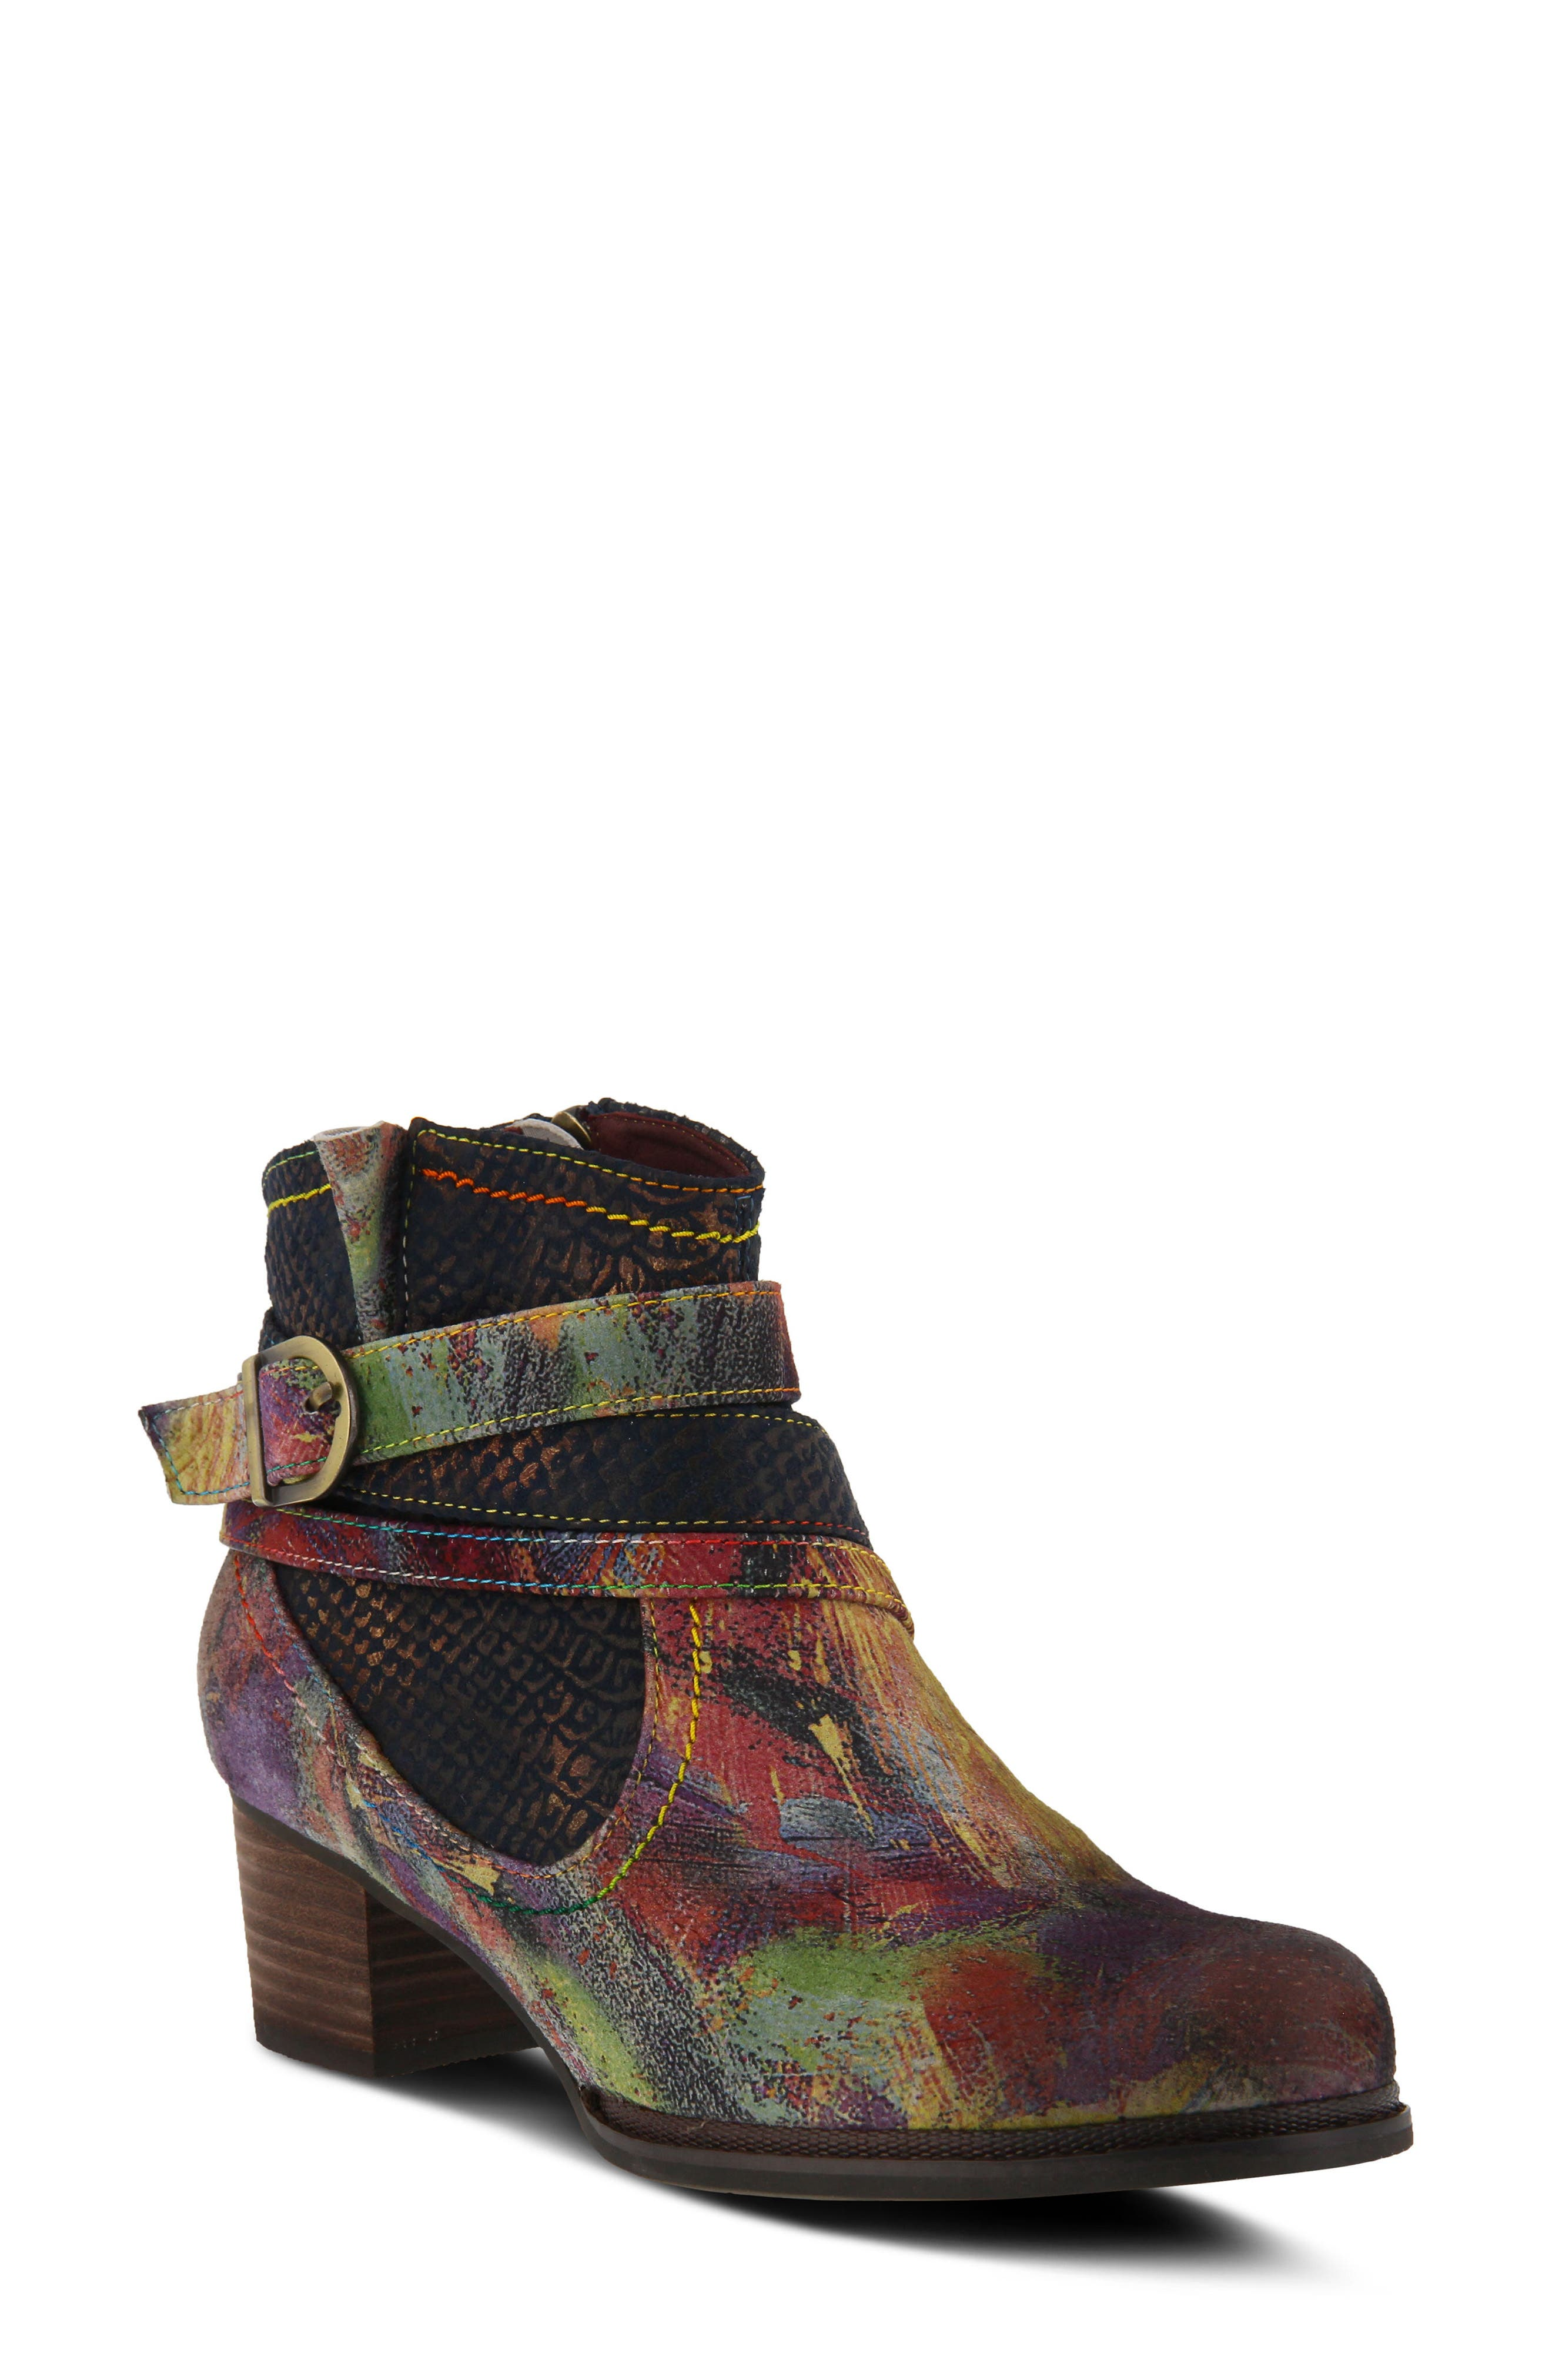 L'Artiste Shazzam Boot,                             Main thumbnail 1, color,                             Navy Leather